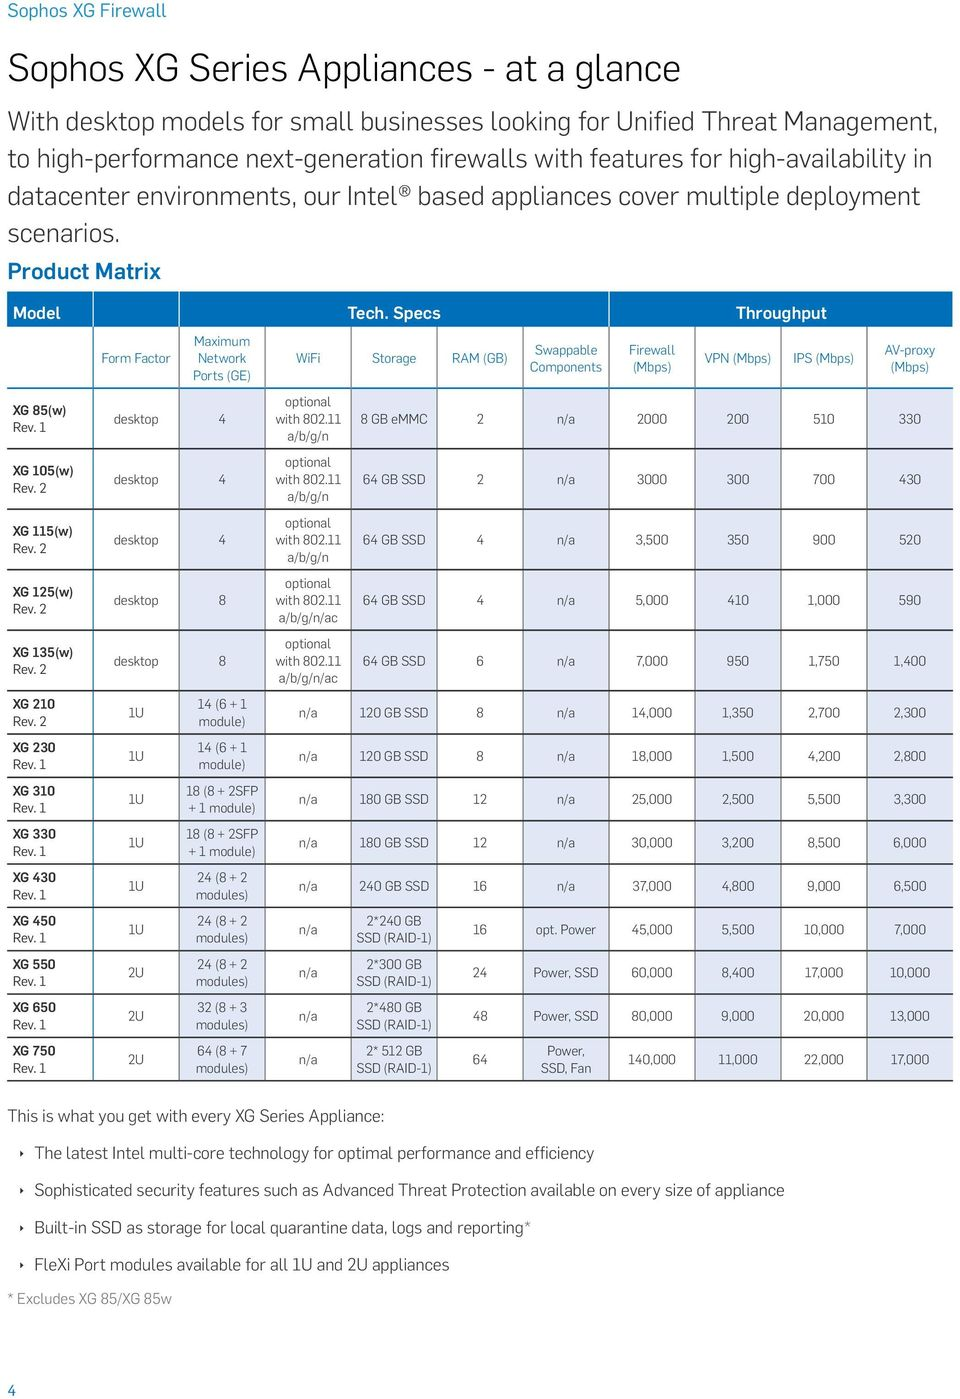 Sophos XG Firewall  Unrivalled performance, security and control - PDF